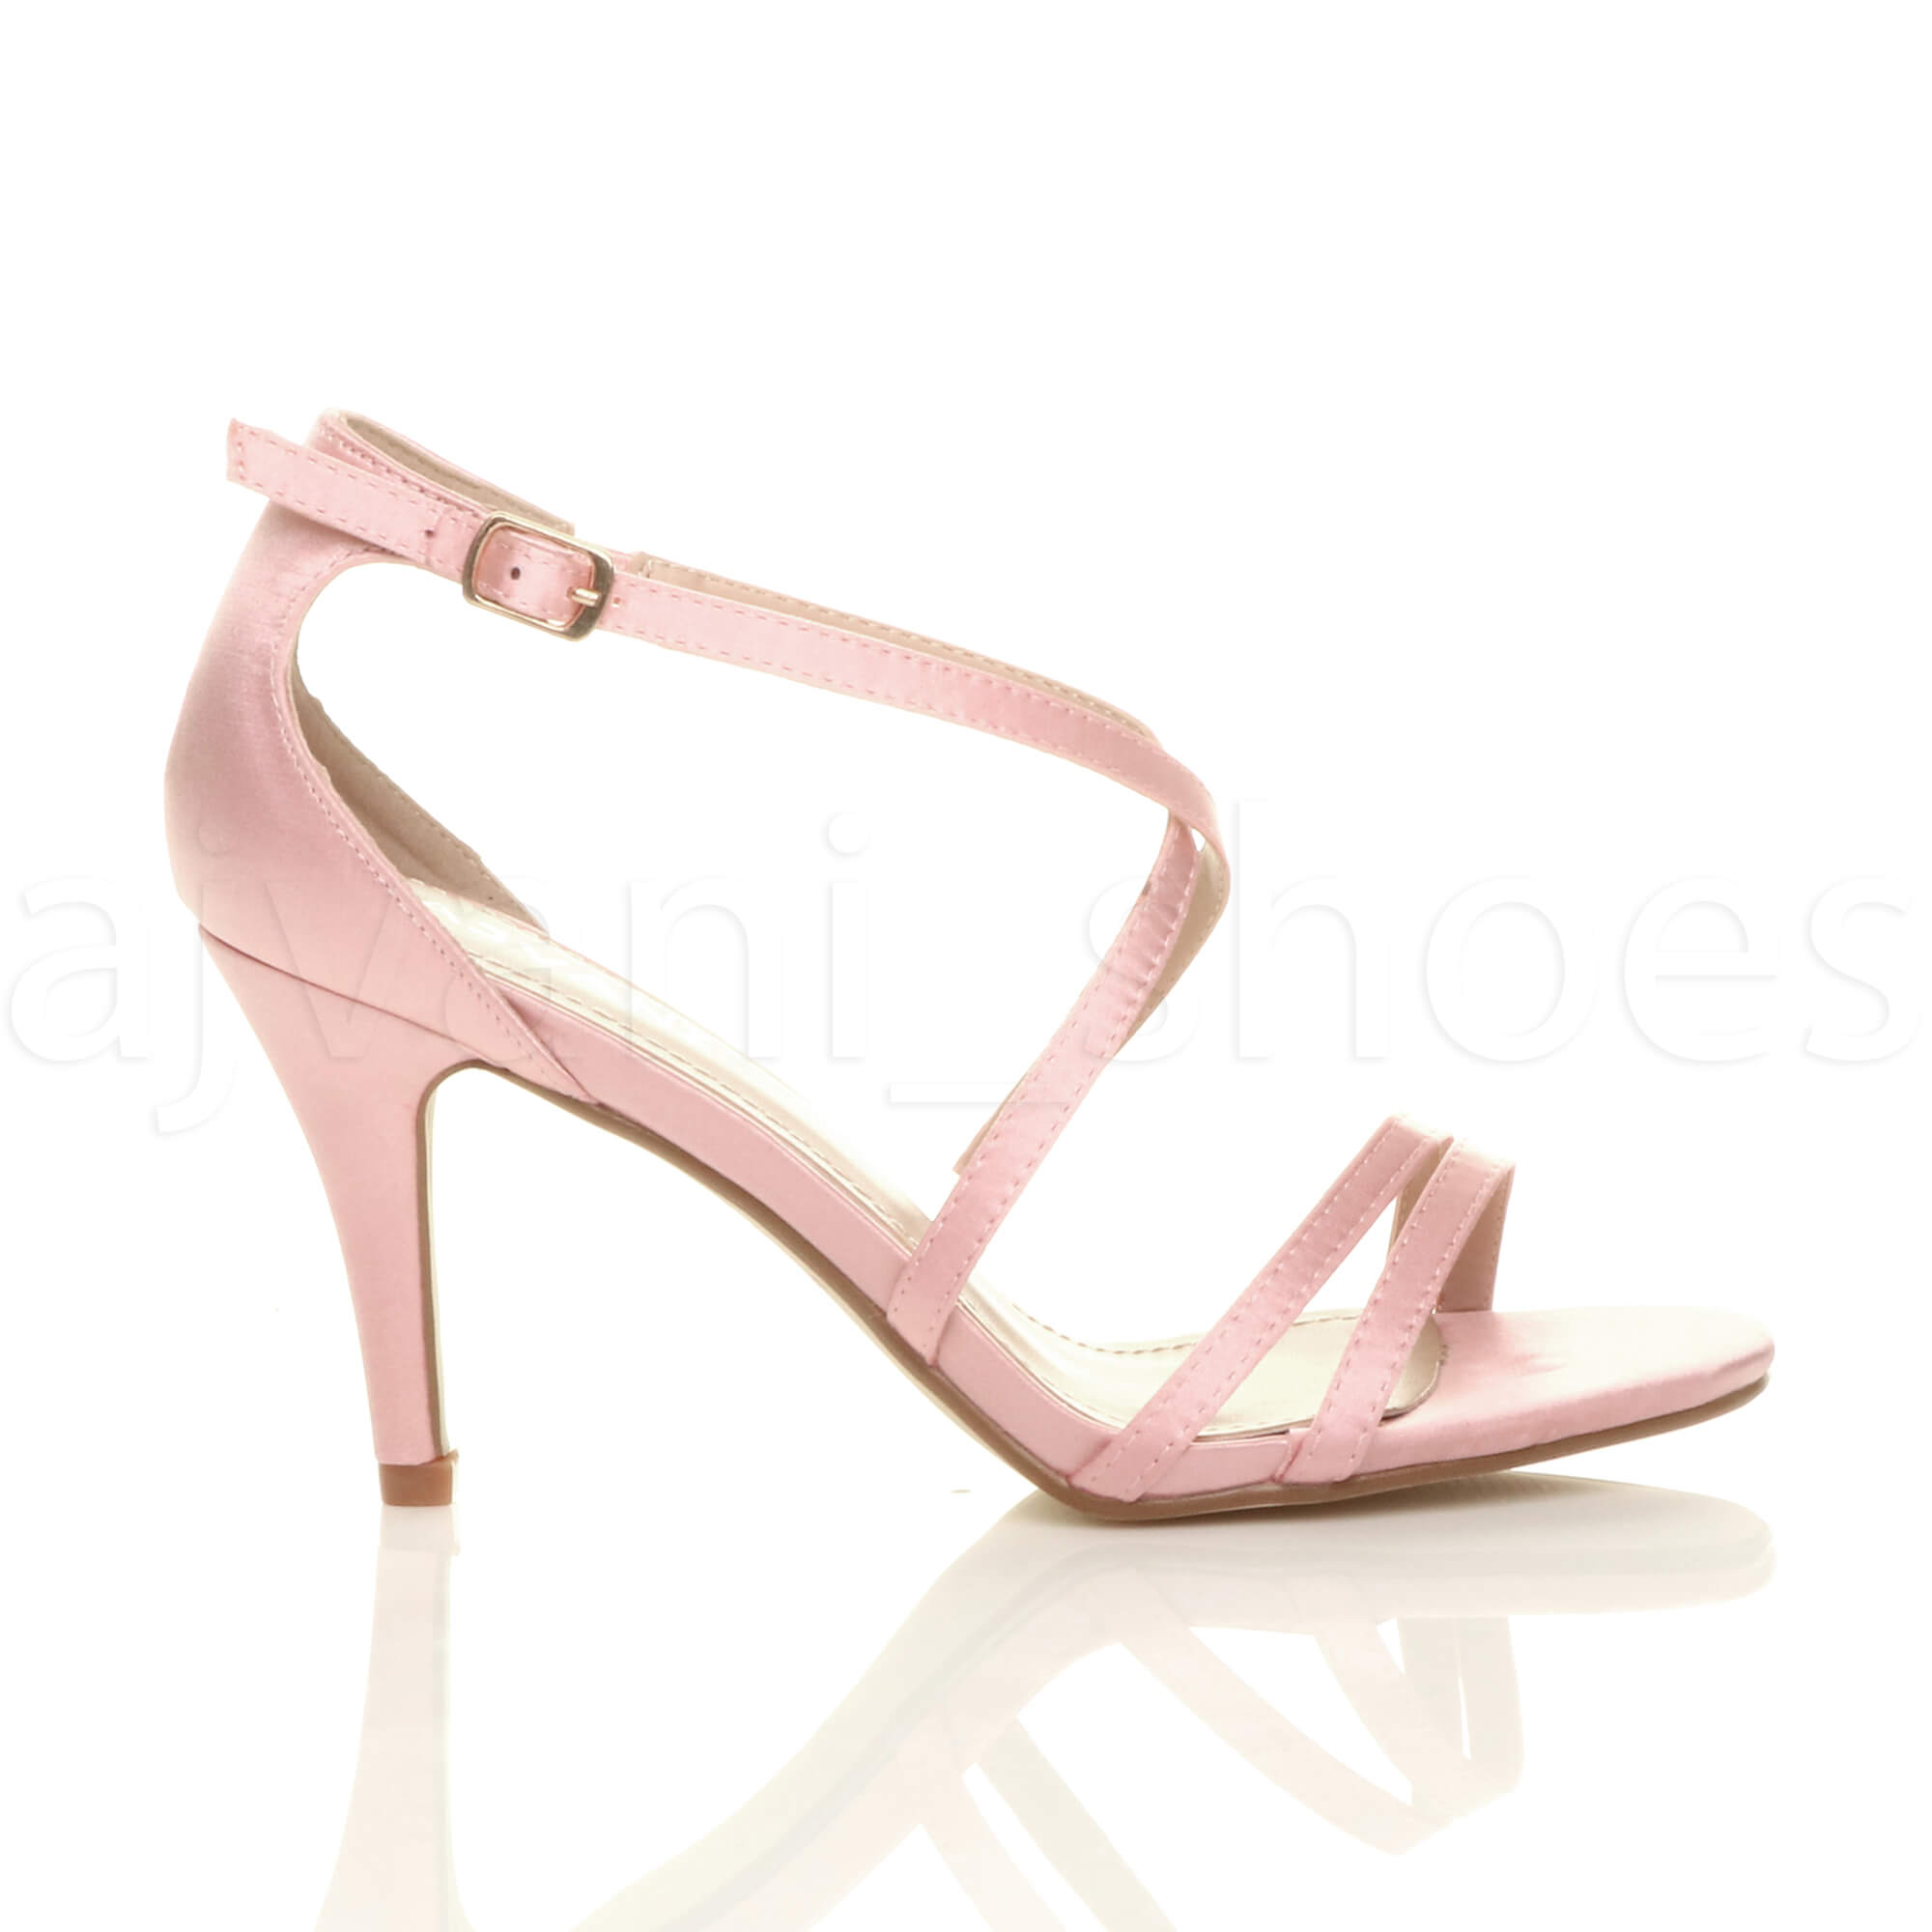 WOMENS-LADIES-MID-HIGH-HEEL-STRAPPY-CROSSOVER-WEDDING-PROM-SANDALS-SHOES-SIZE thumbnail 3